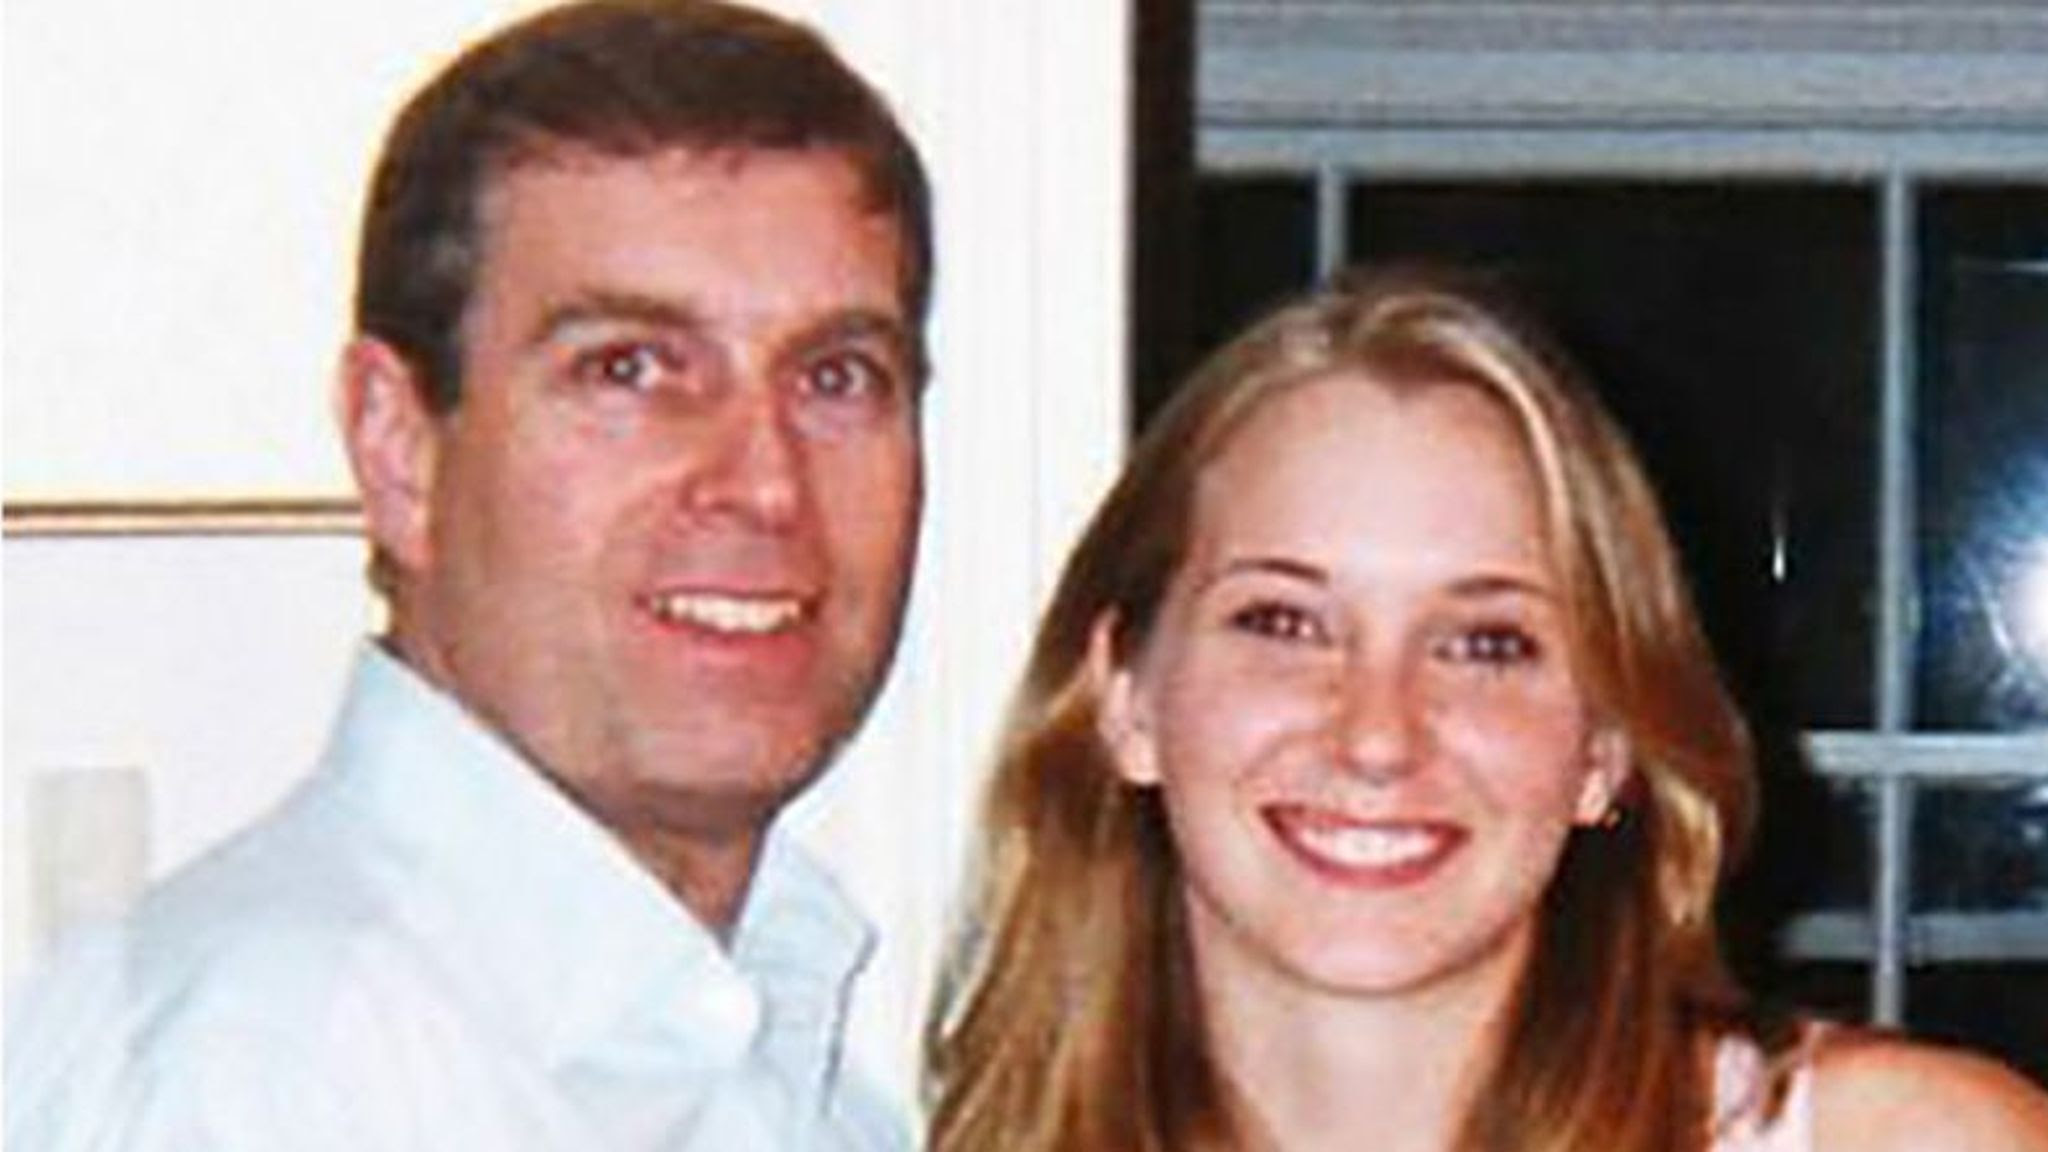 Prince Andrew: High Court accepts Virginia Giuffre's request to formally contact duke over alleged sexual assault case